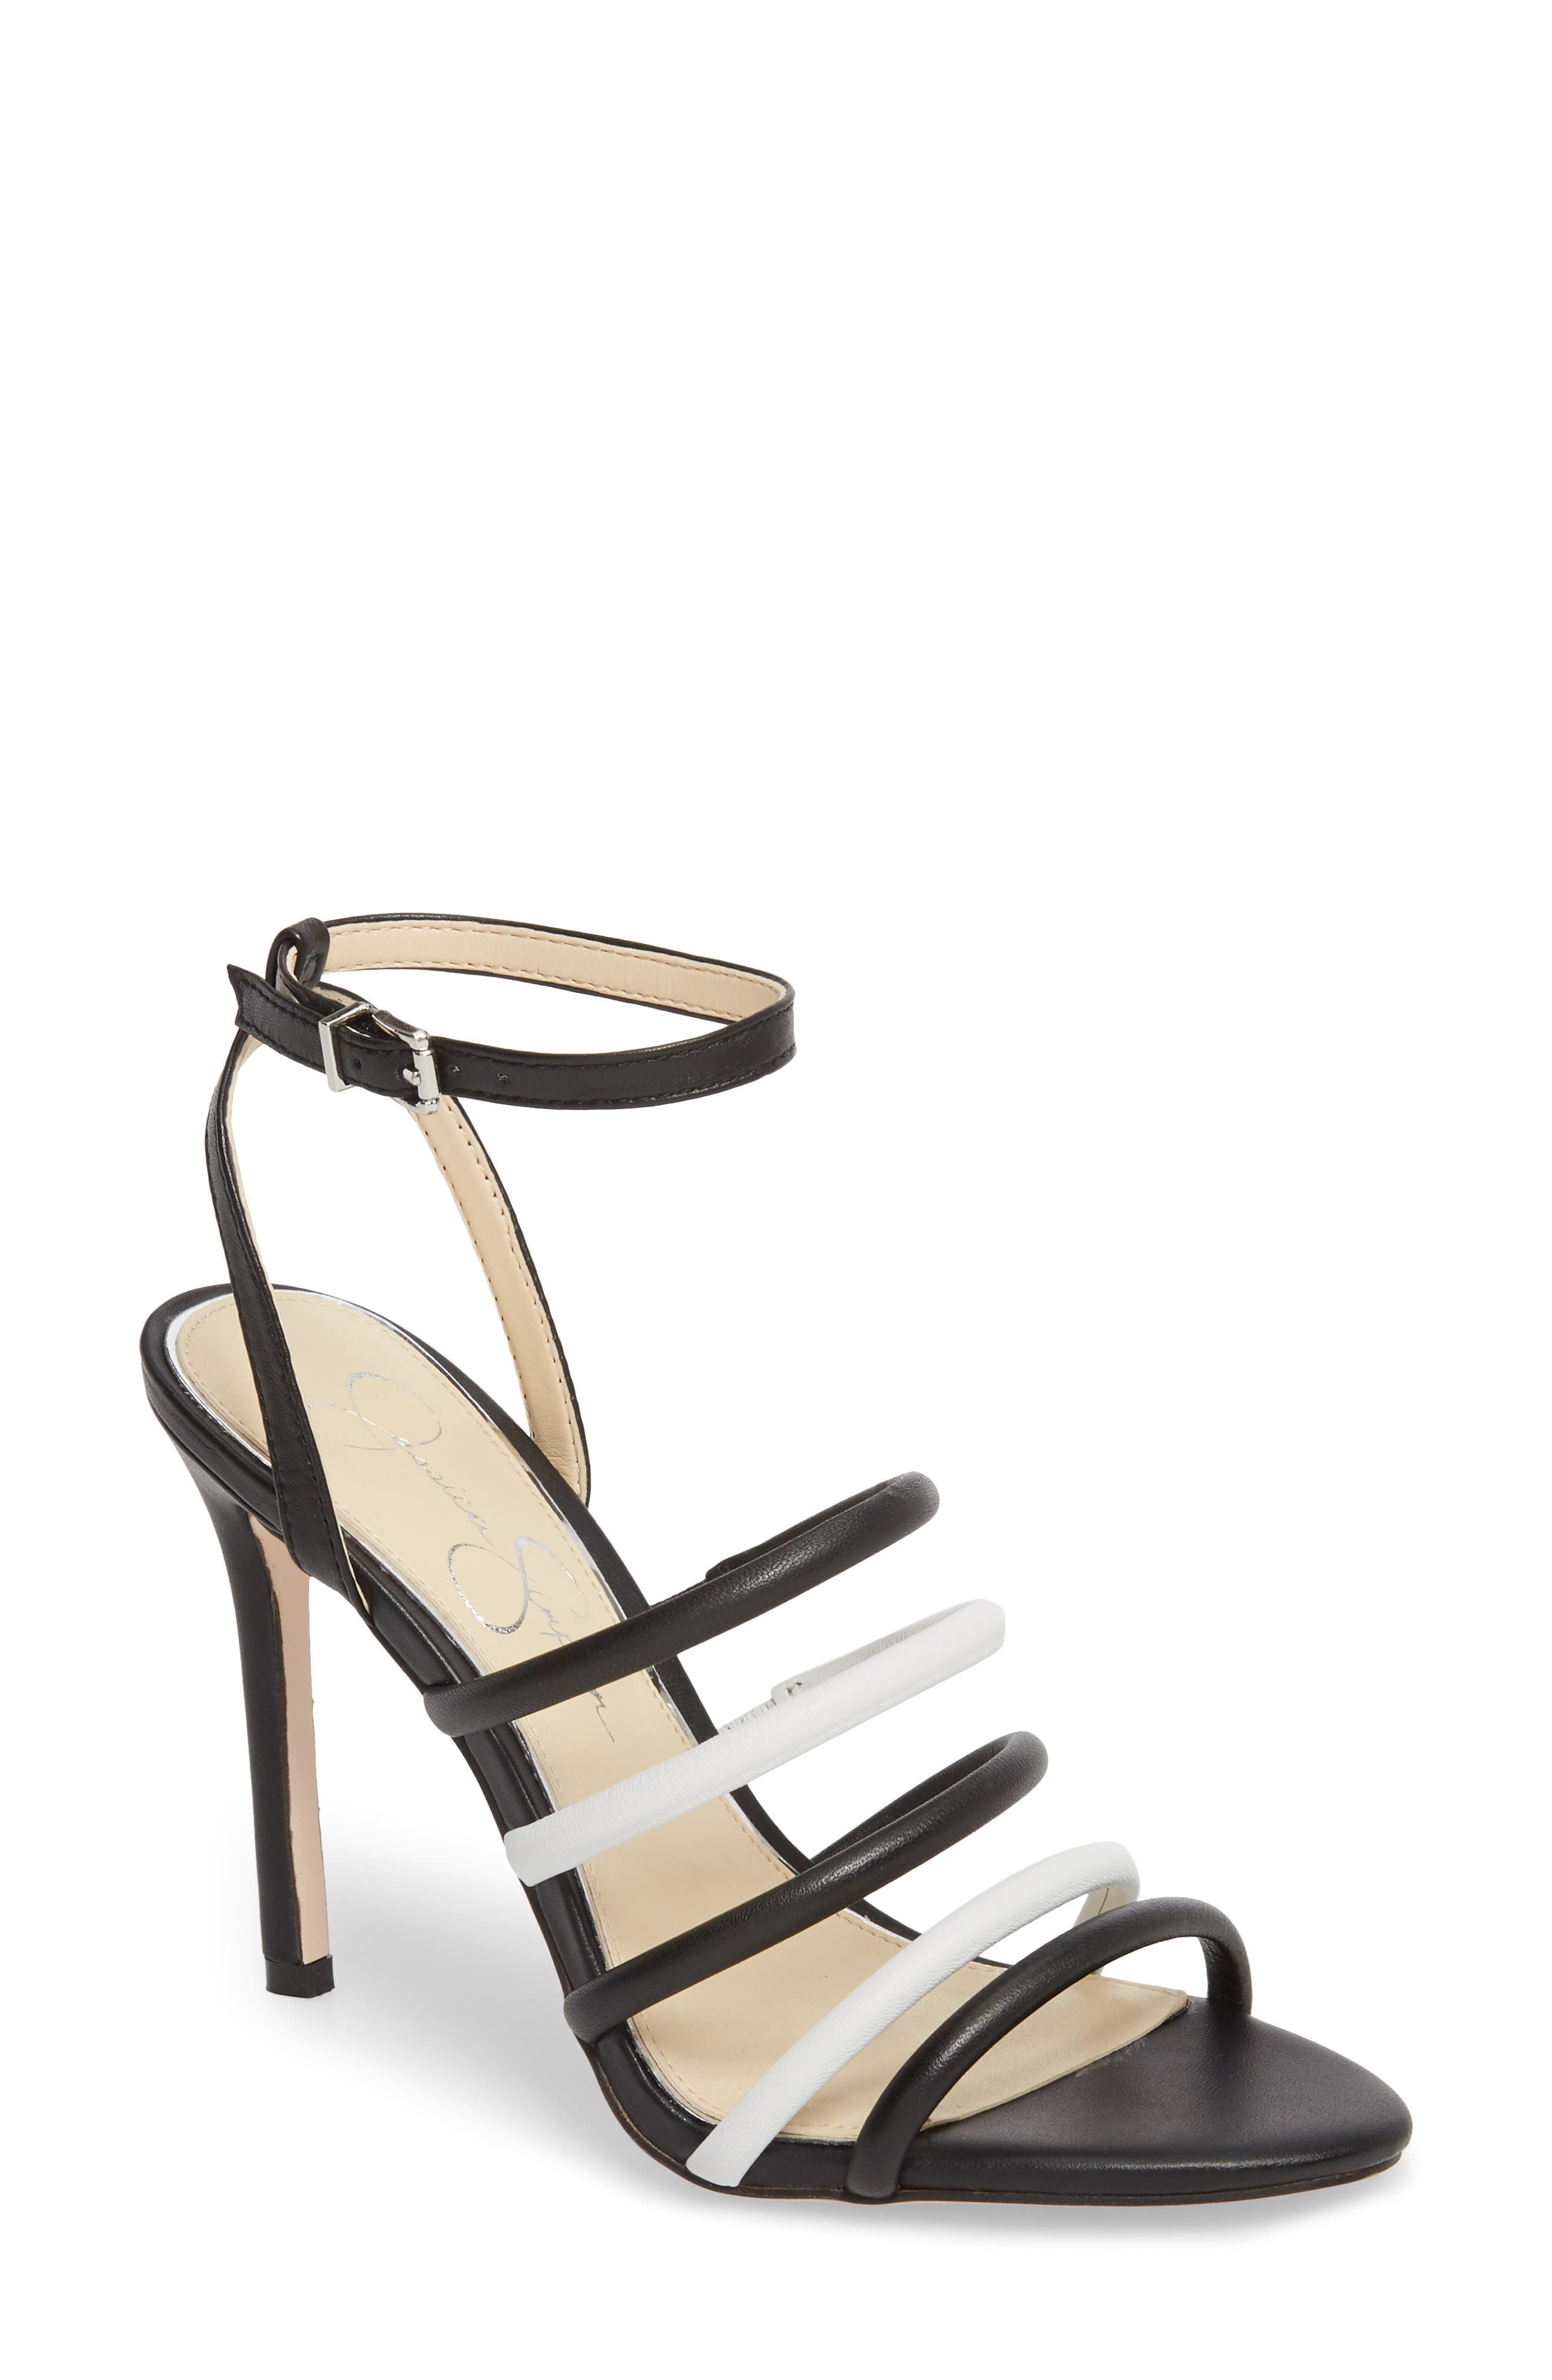 Joselle Strappy Sandal,                             Main thumbnail 1, color,